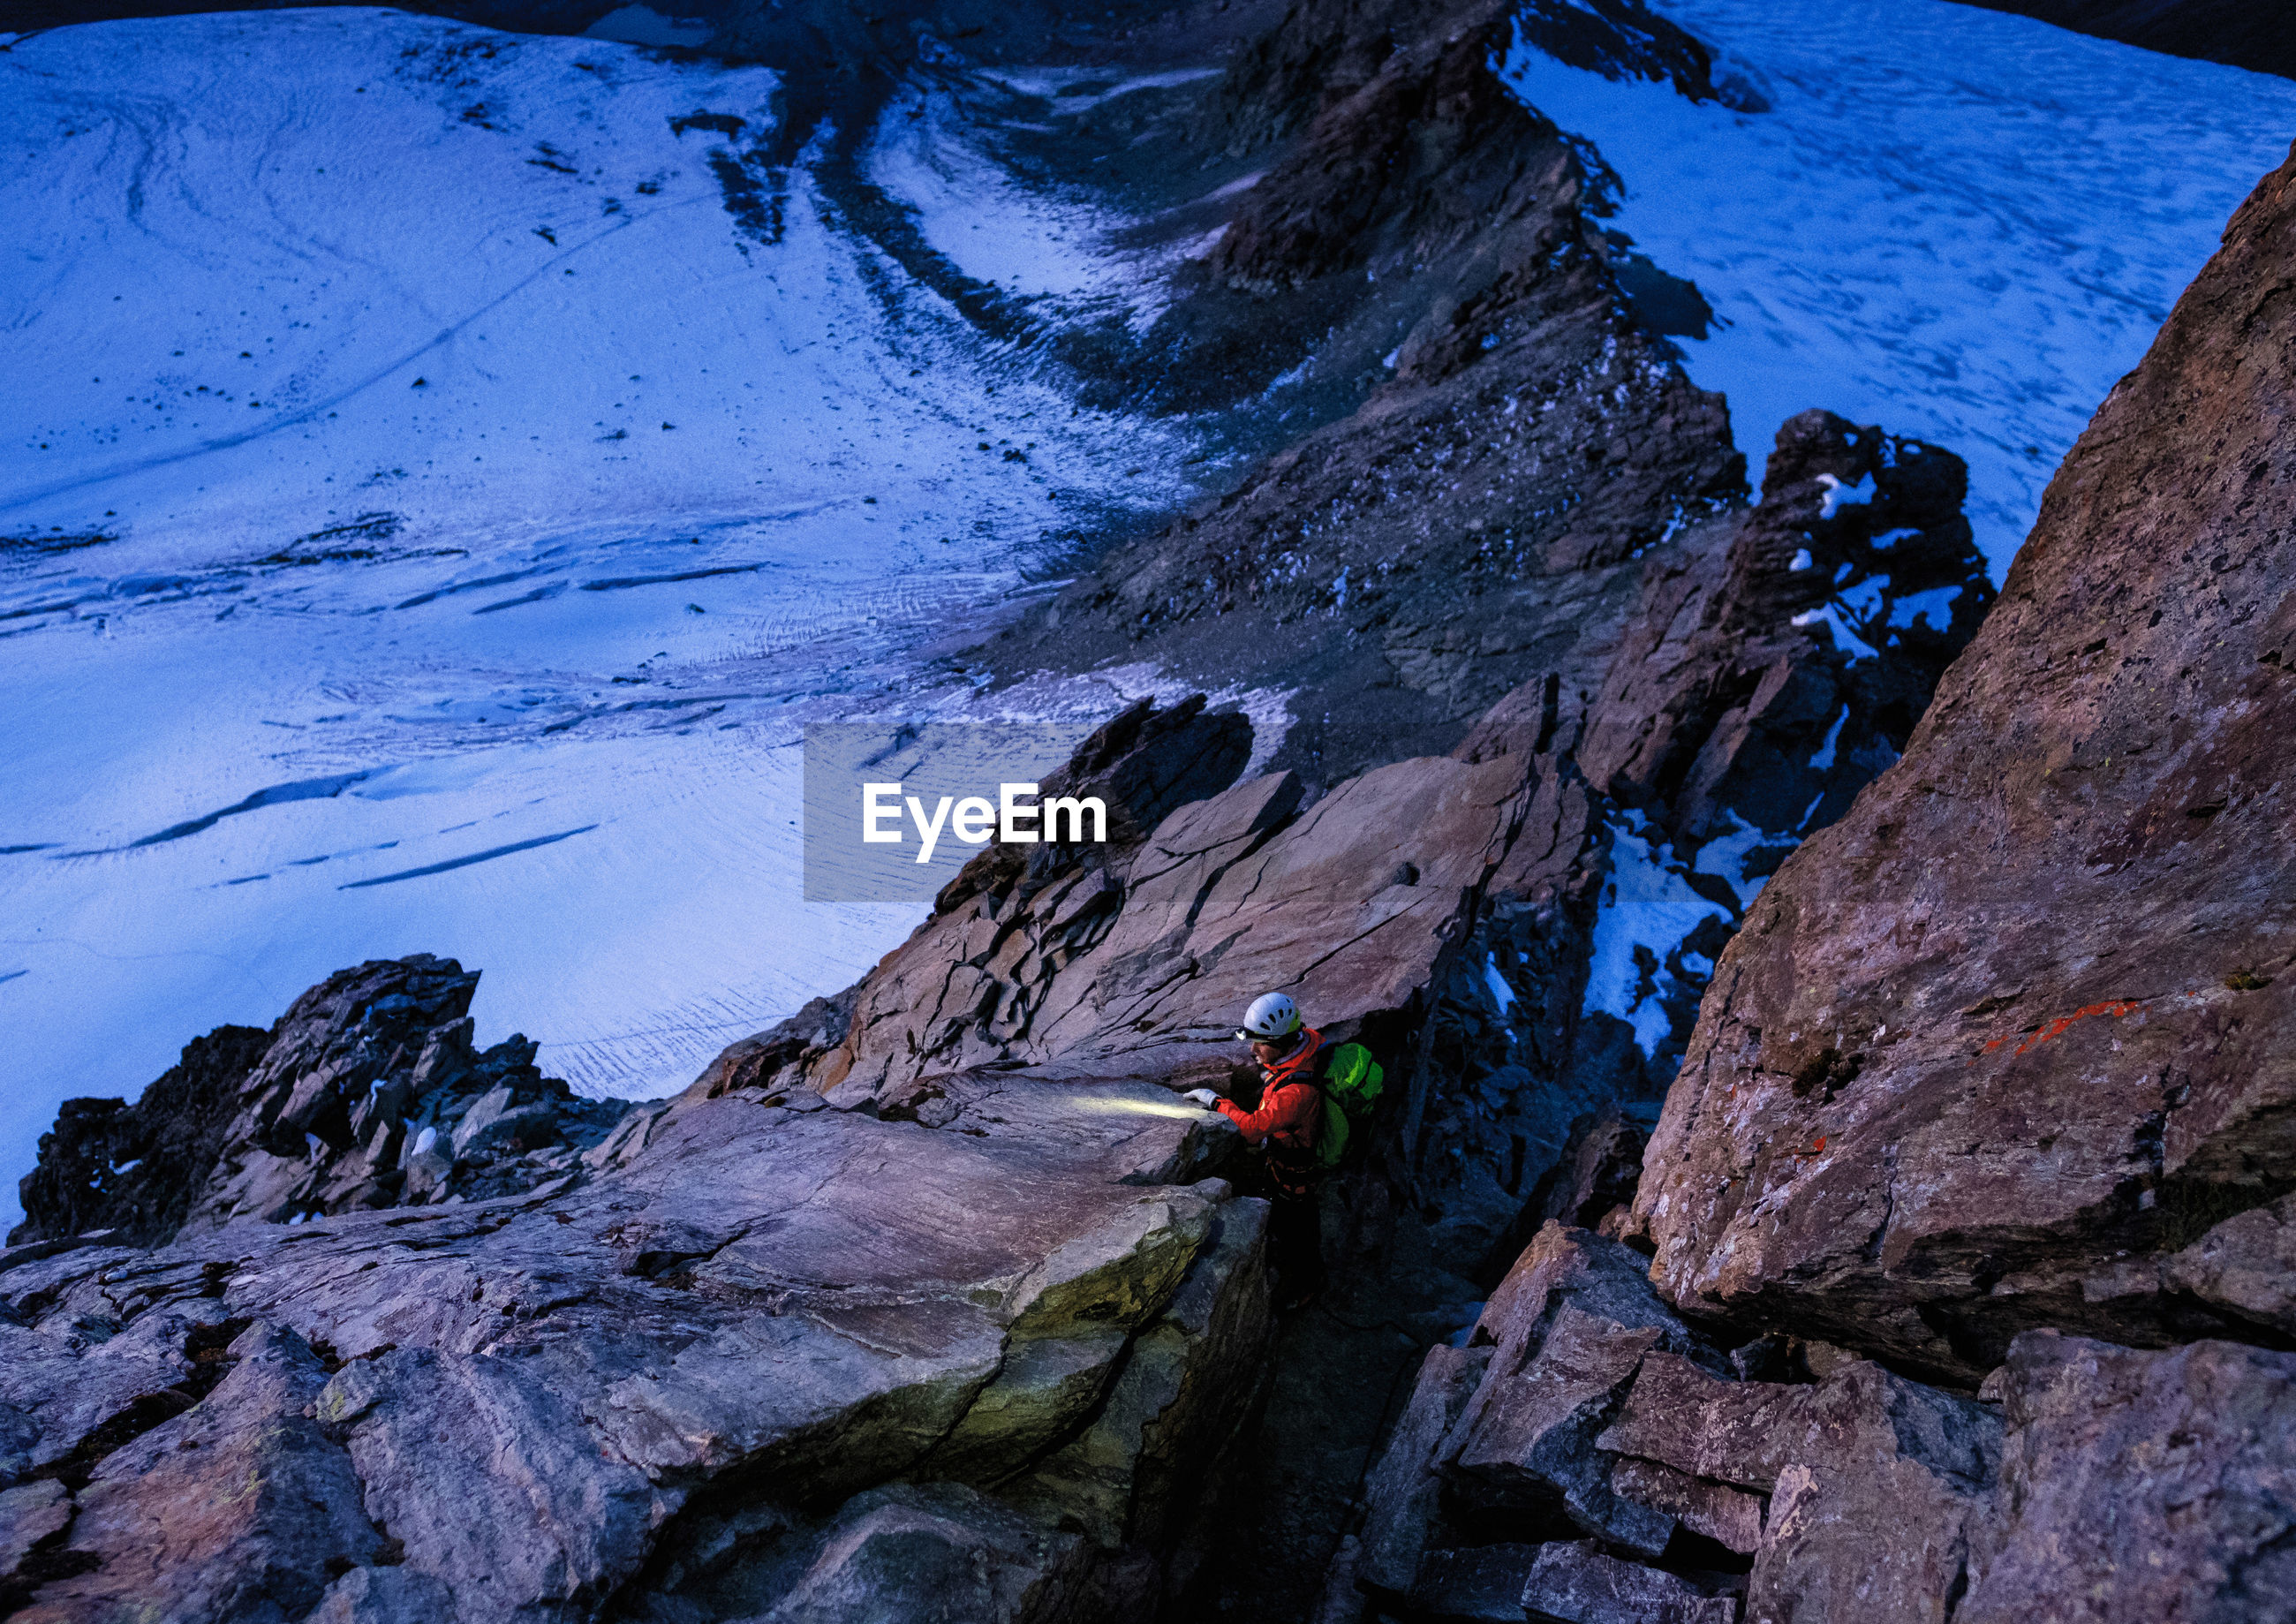 High angle view of person flashlight while standing at grossglockner